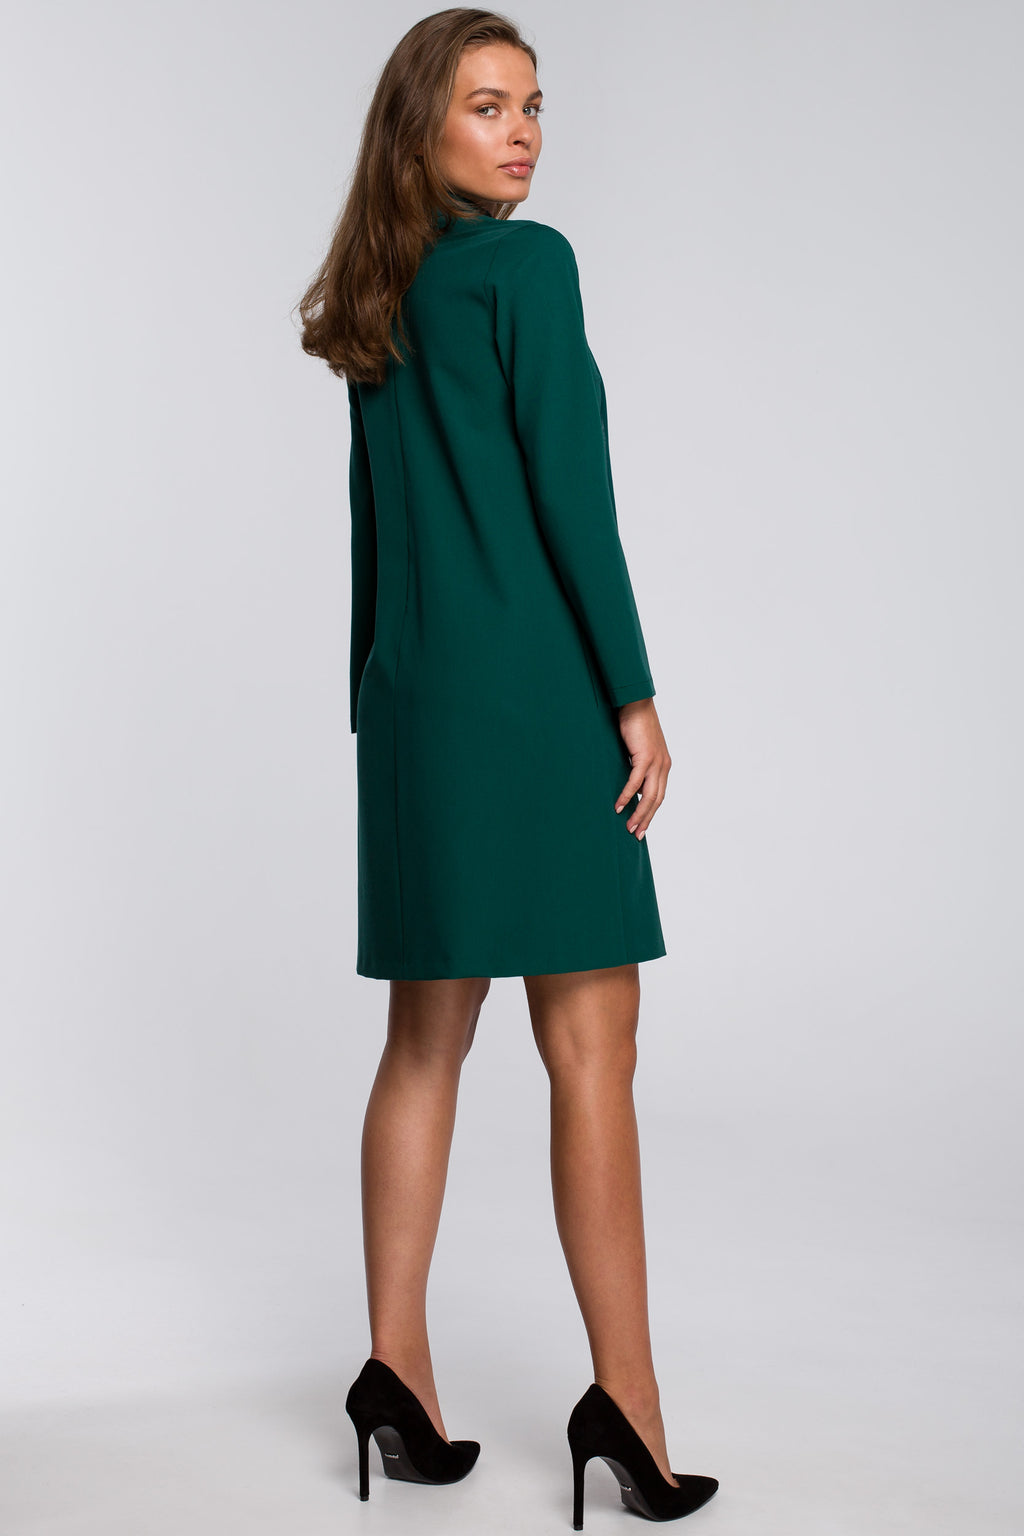 Green Shift Dress With Chiffon Scarf - So Chic Boutique